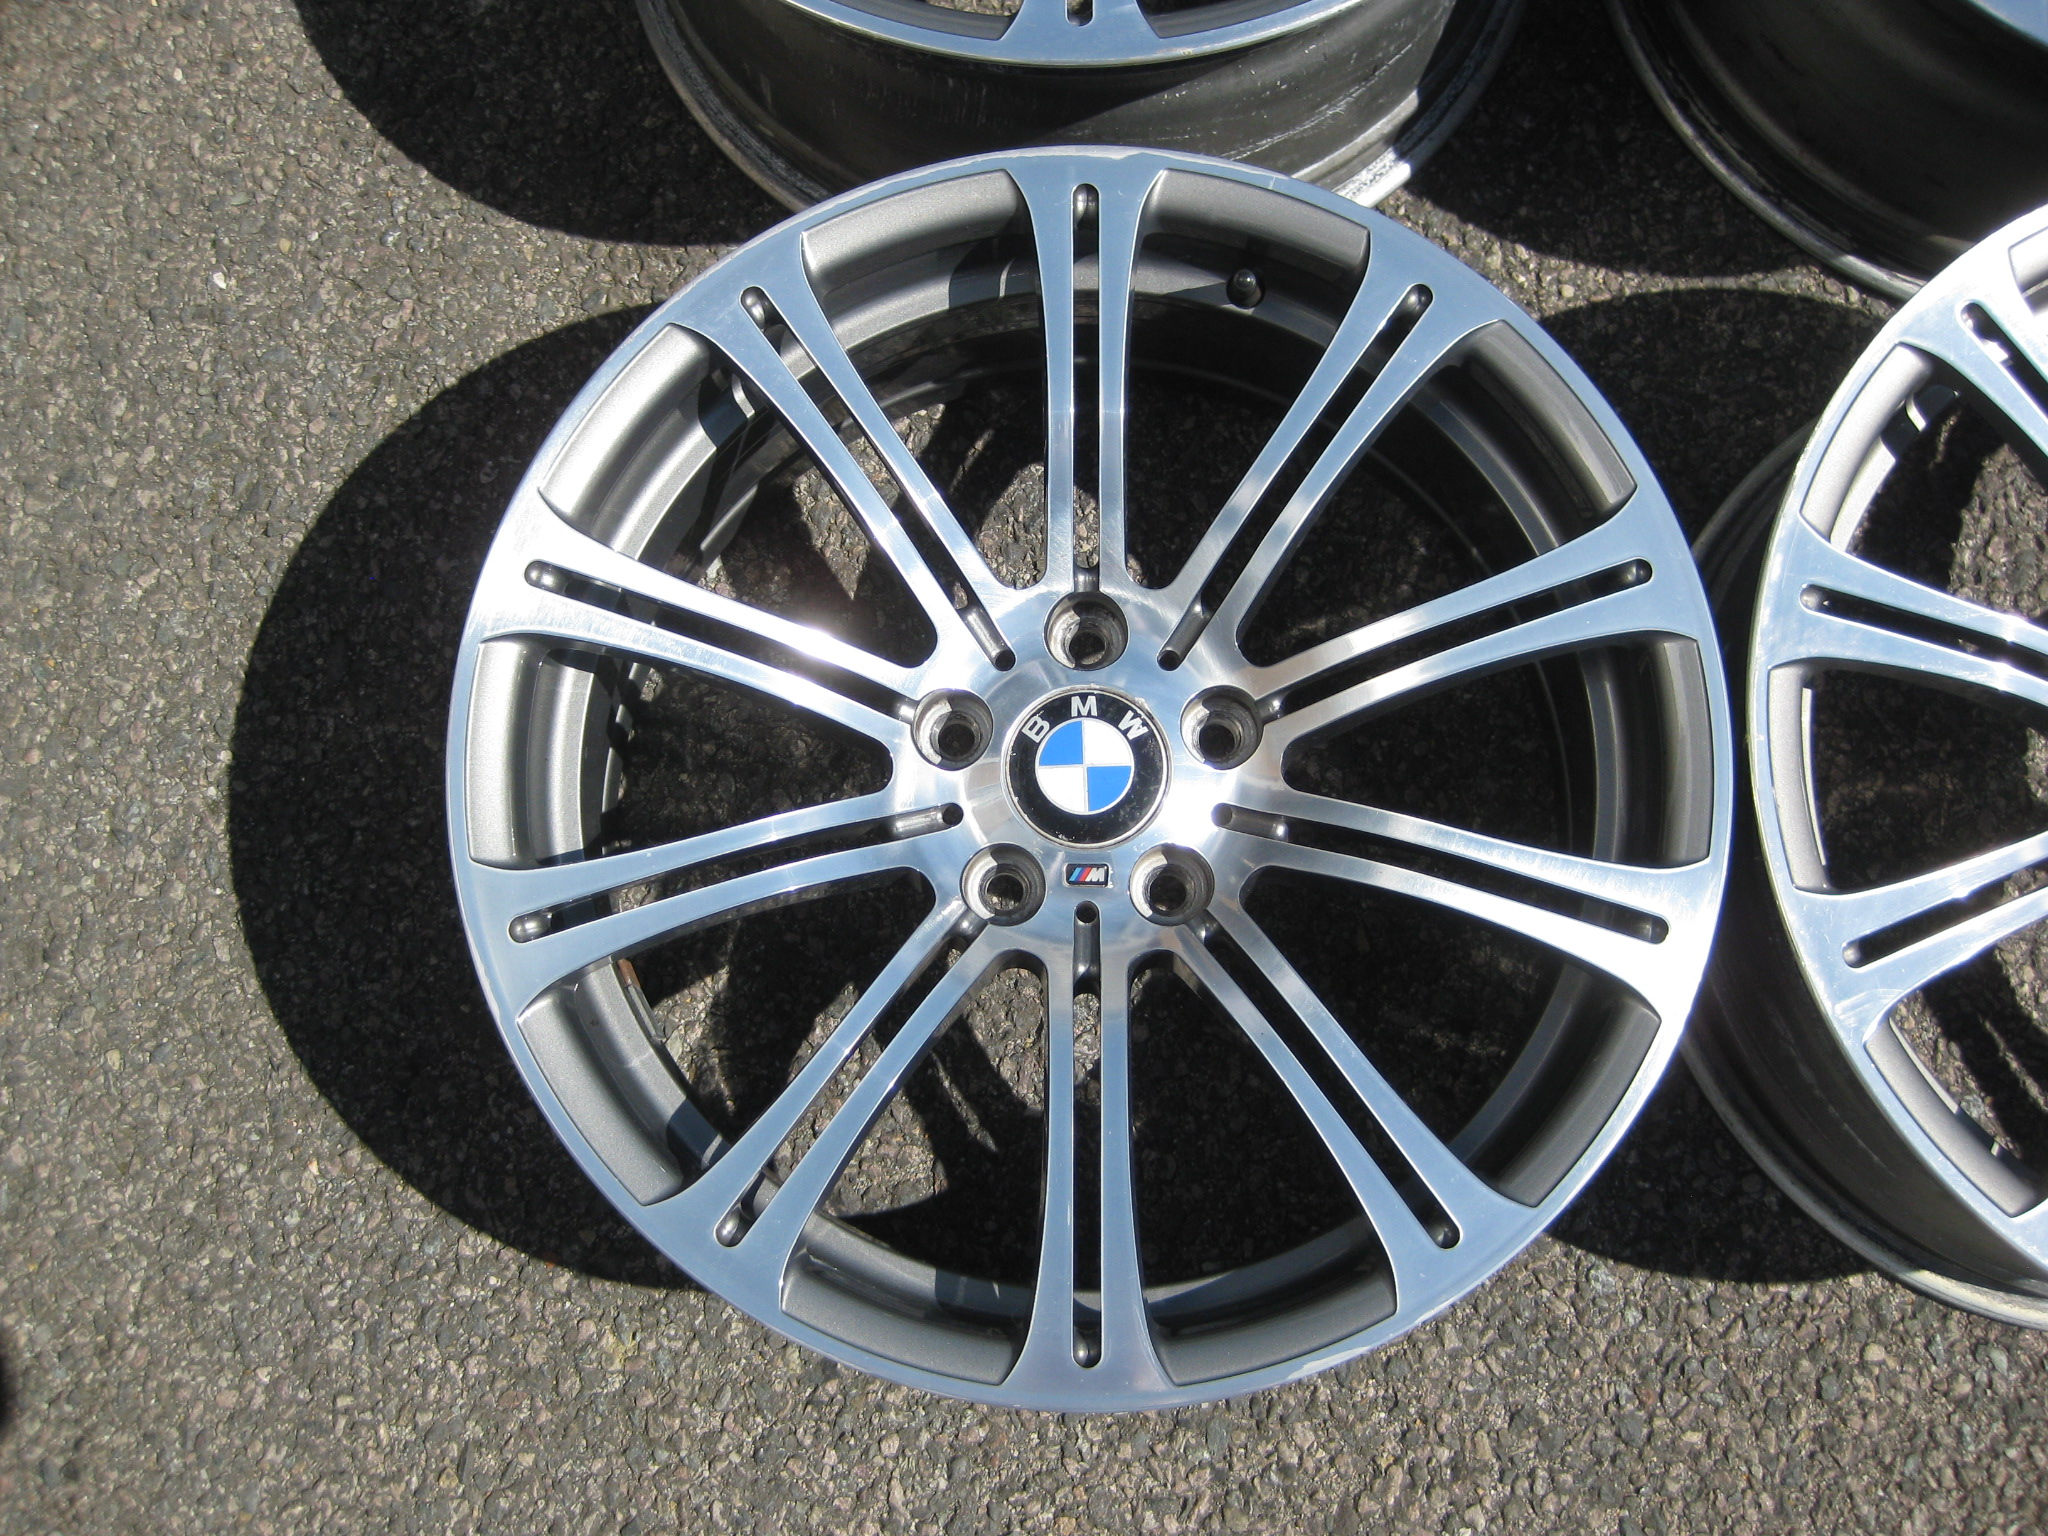 "USED 19"" GENUINE BMW STYLE 220 E92 M3 POLISHED FORGED ALLOY WHEELS, WIDE REAR, GOOD ORIGINAL CONDITION"